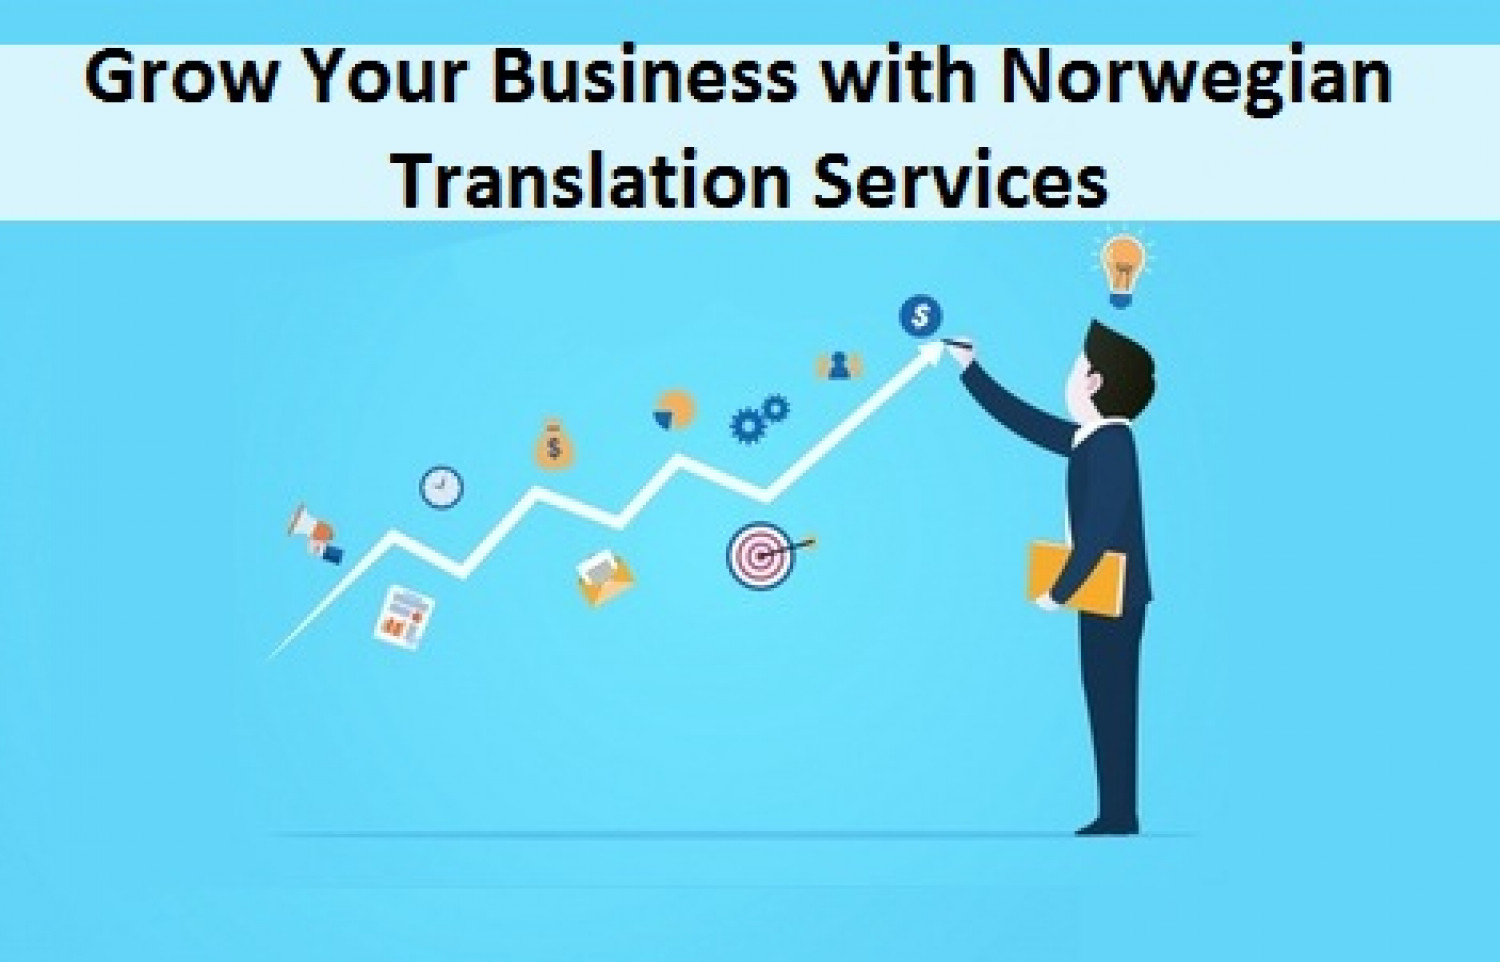 Grow Your Business with Norwegian Translation Services Infographic